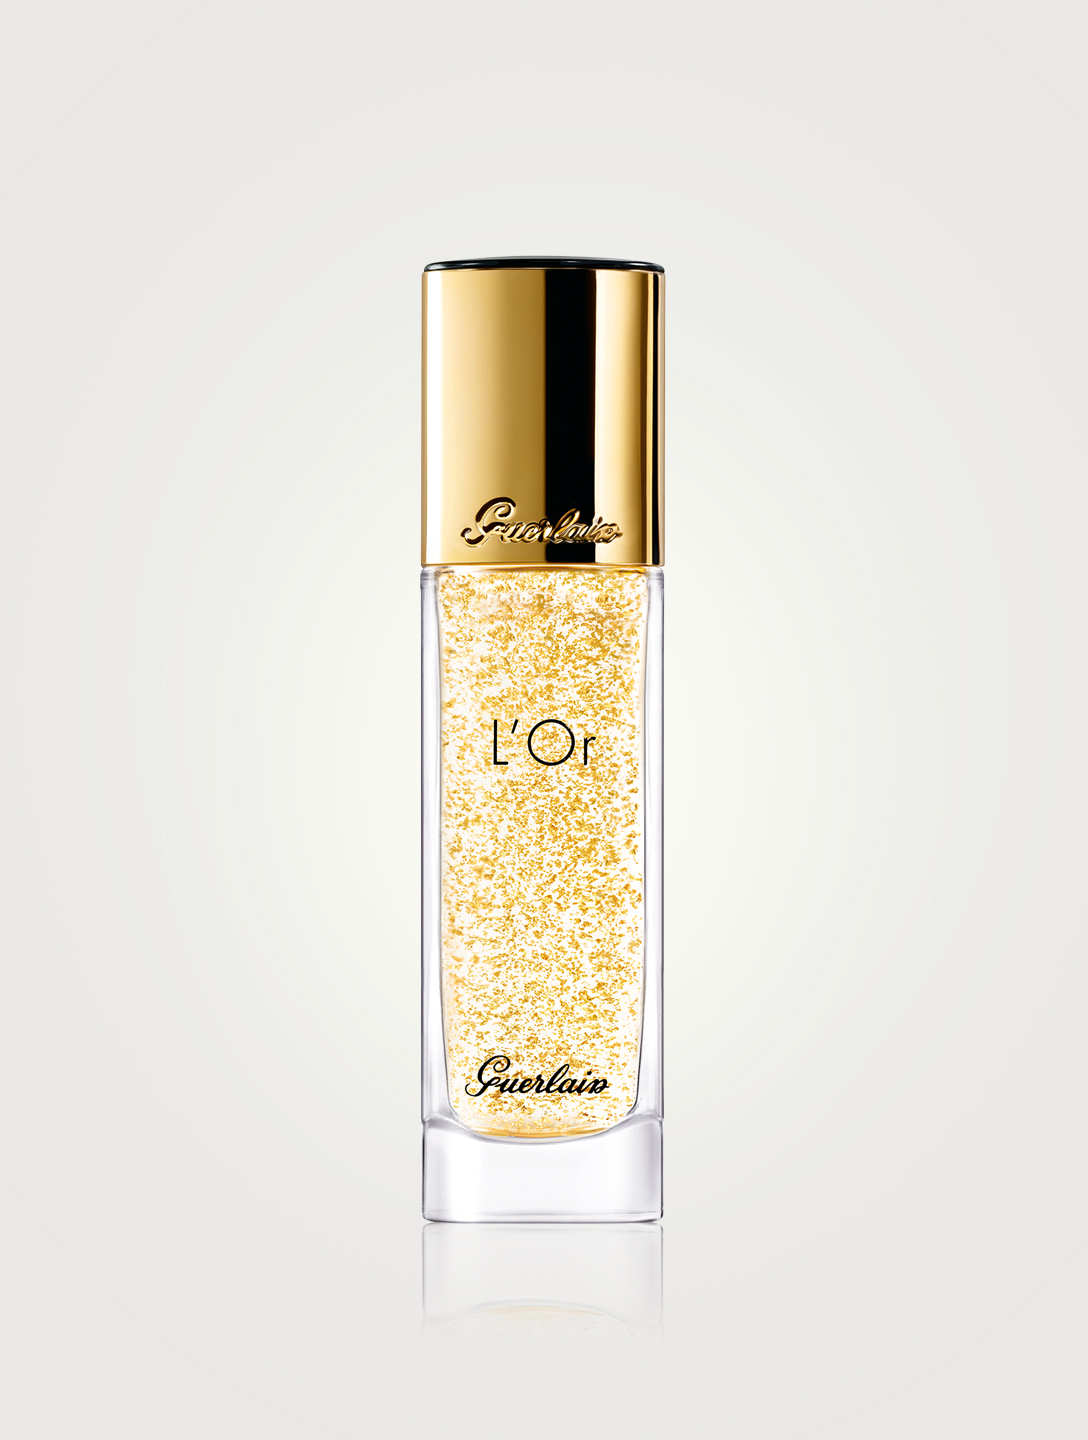 GUERLAIN L'Or Radiance Concentrate with Pure Gold Beauty